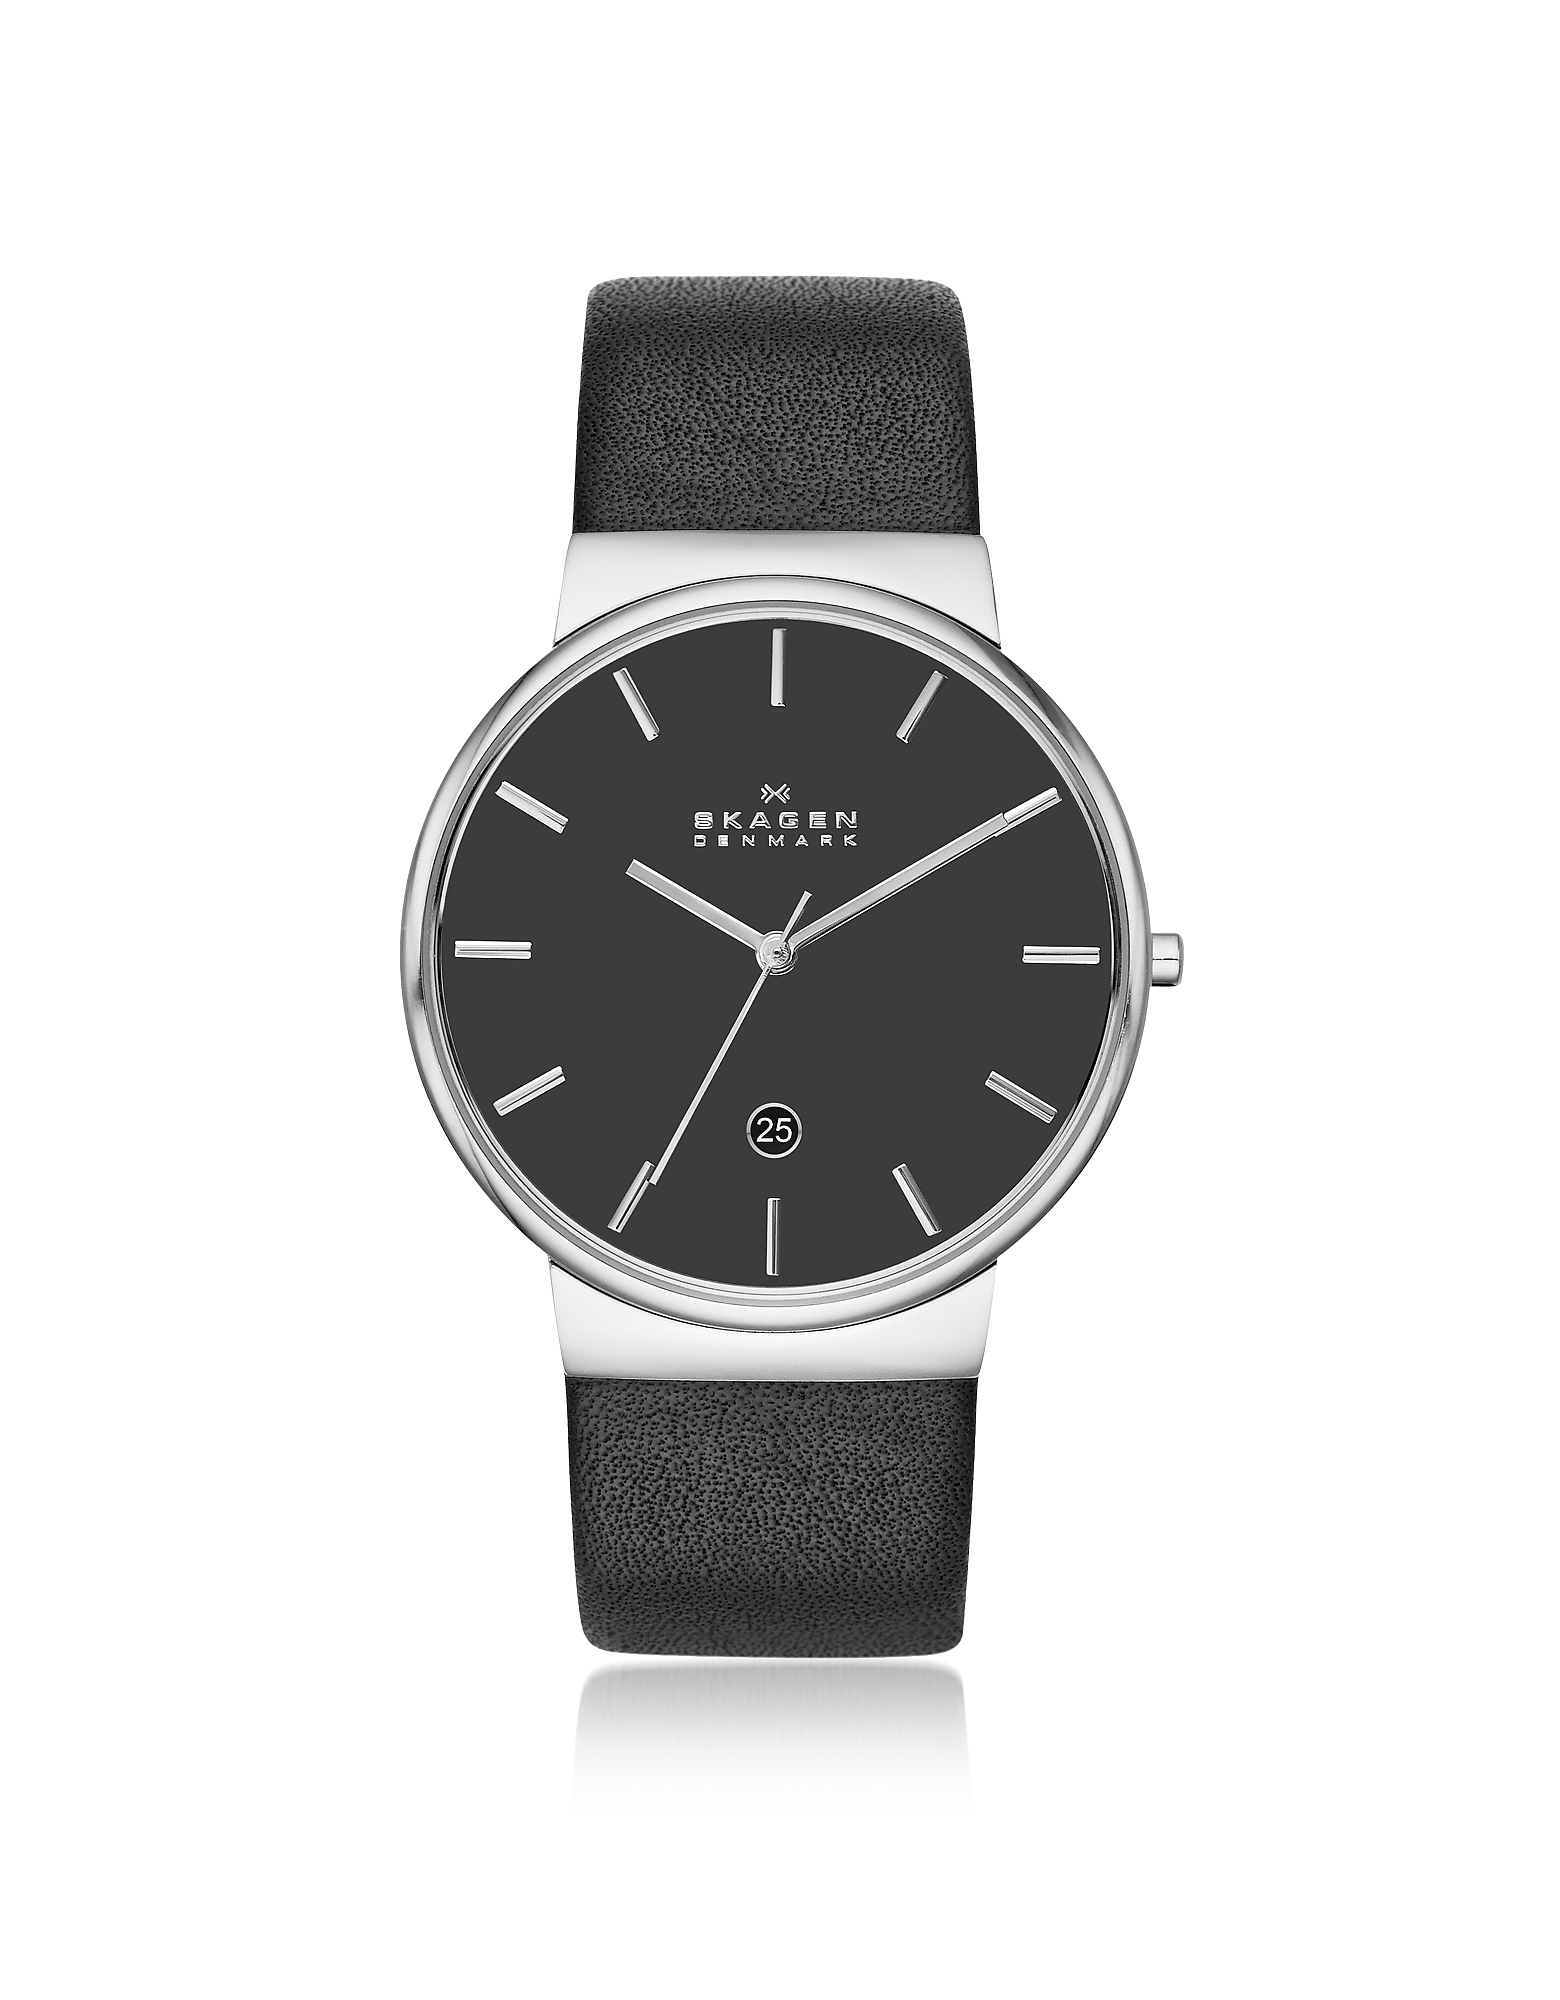 Ancher Black Leather Men's Watch